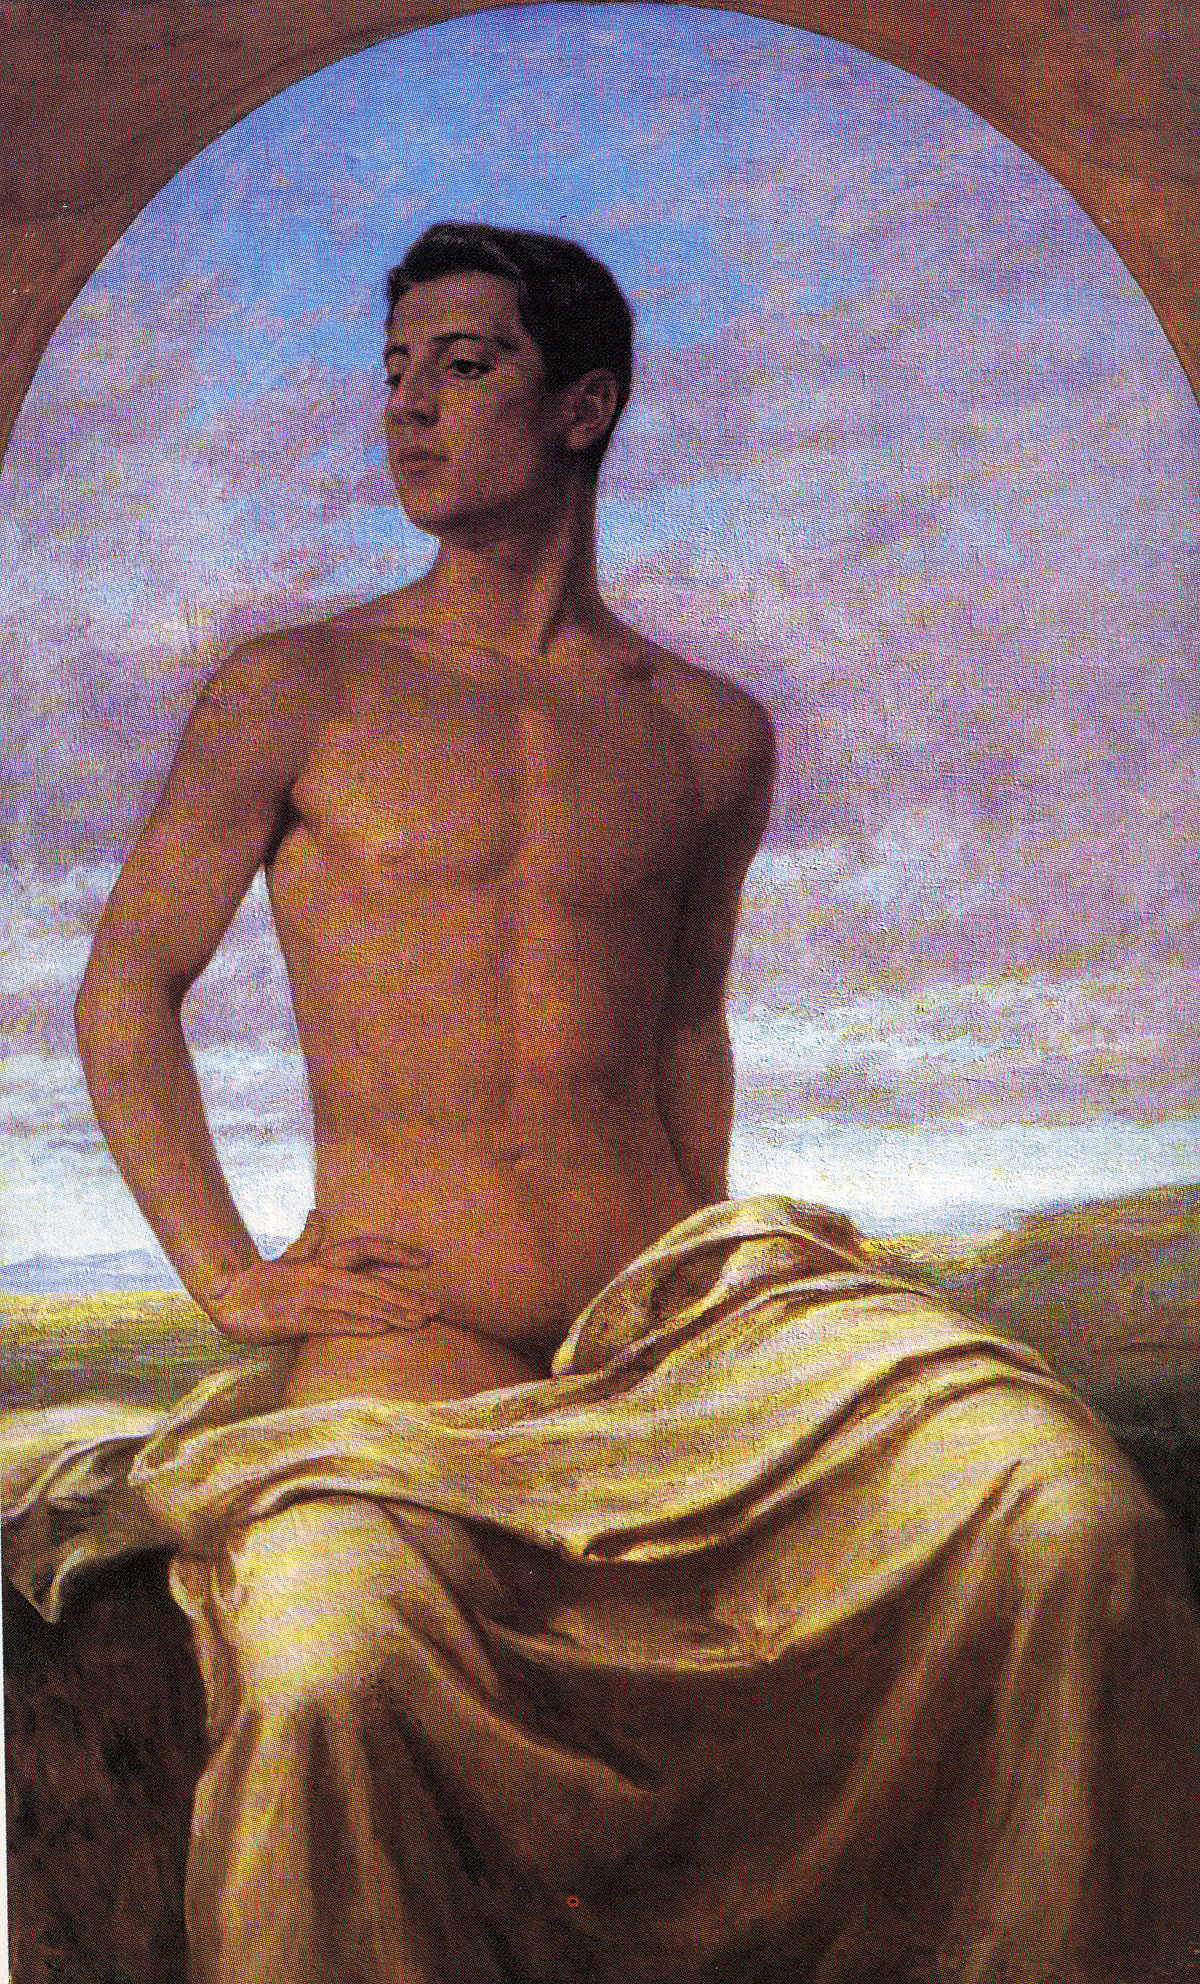 You were current gay italian nude male art are mistaken